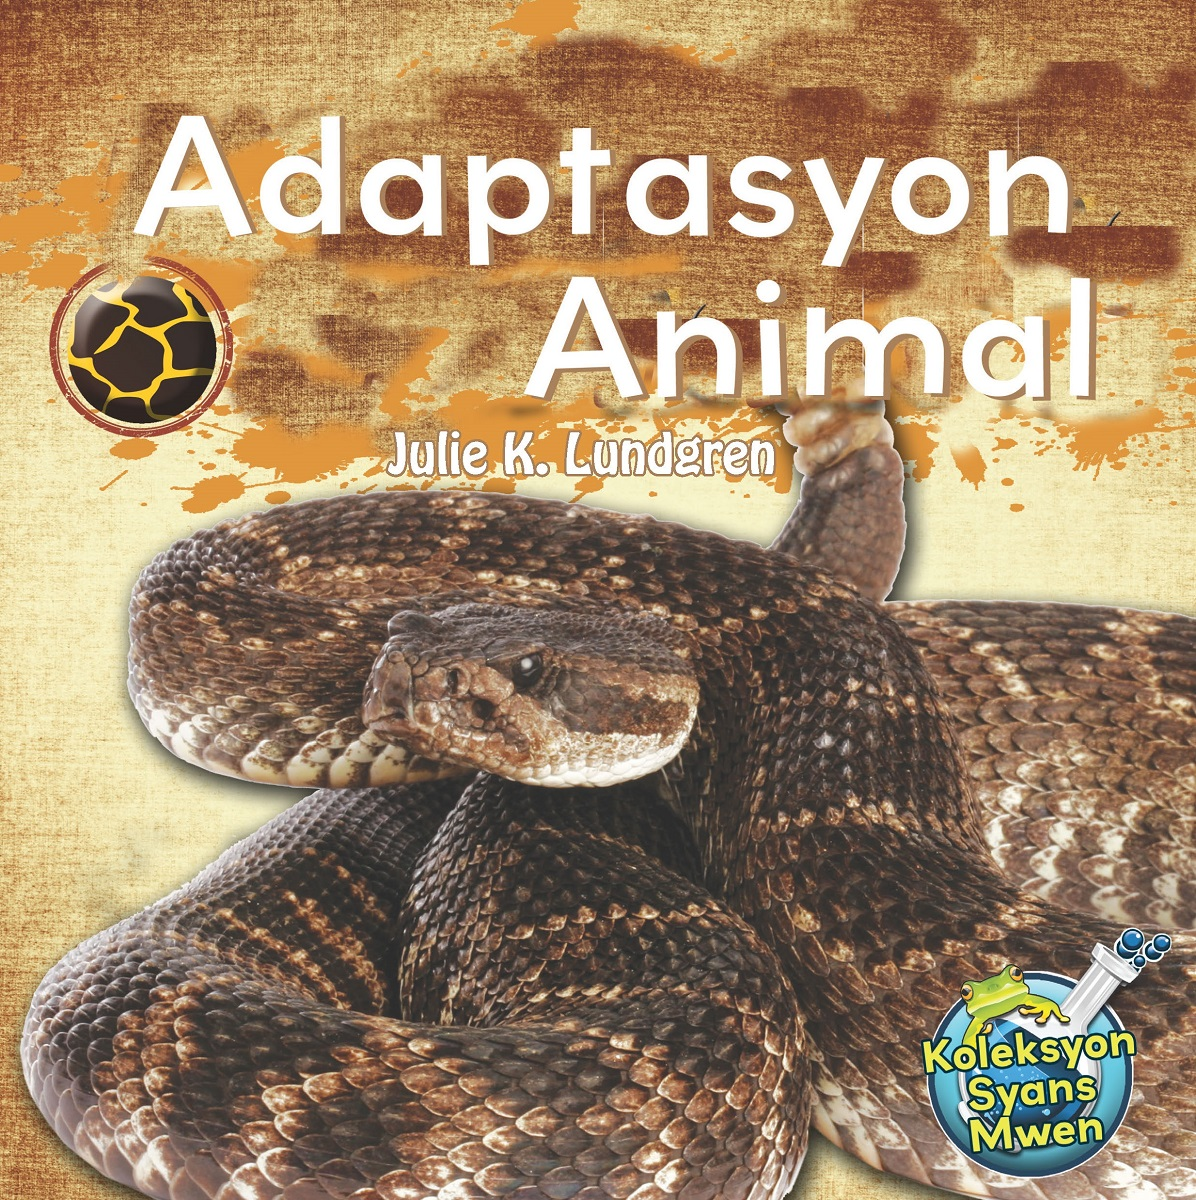 Adaptasyon Animal